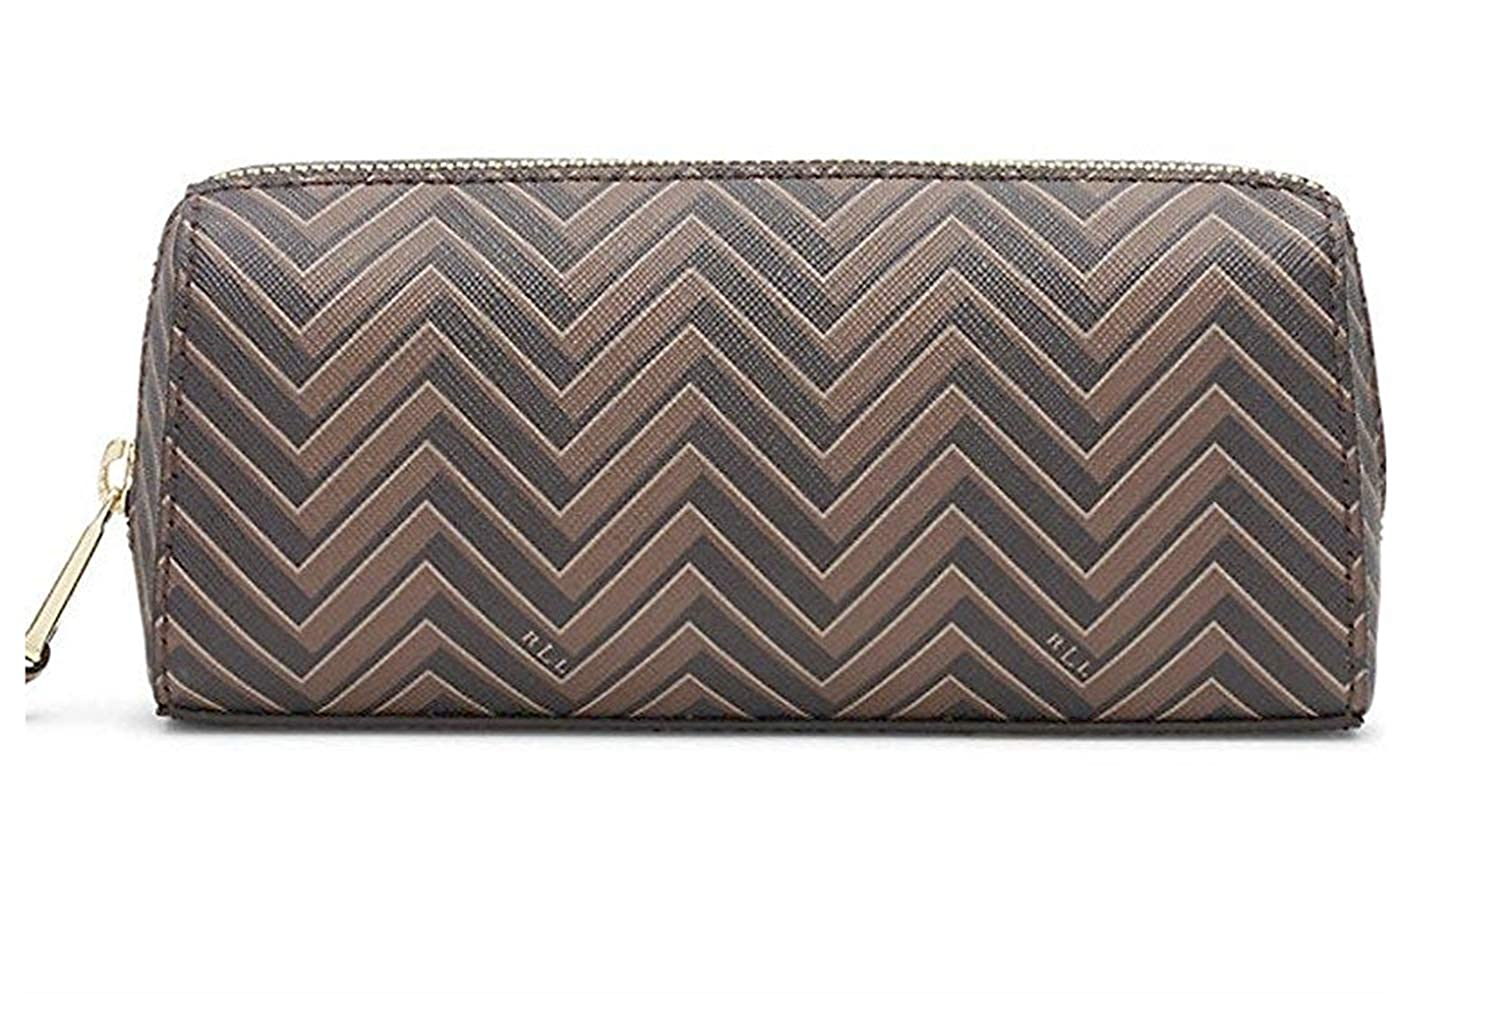 [Tory Burch] (ラルフローレン) RALPH LAUREN Chevron Print 女性用 レディース 化粧 ケース ポーチ 鞄 Ladies Cosmetic Case/Makeup Pouch [並行輸入品]  Brown / Tan B01DJ01SZI